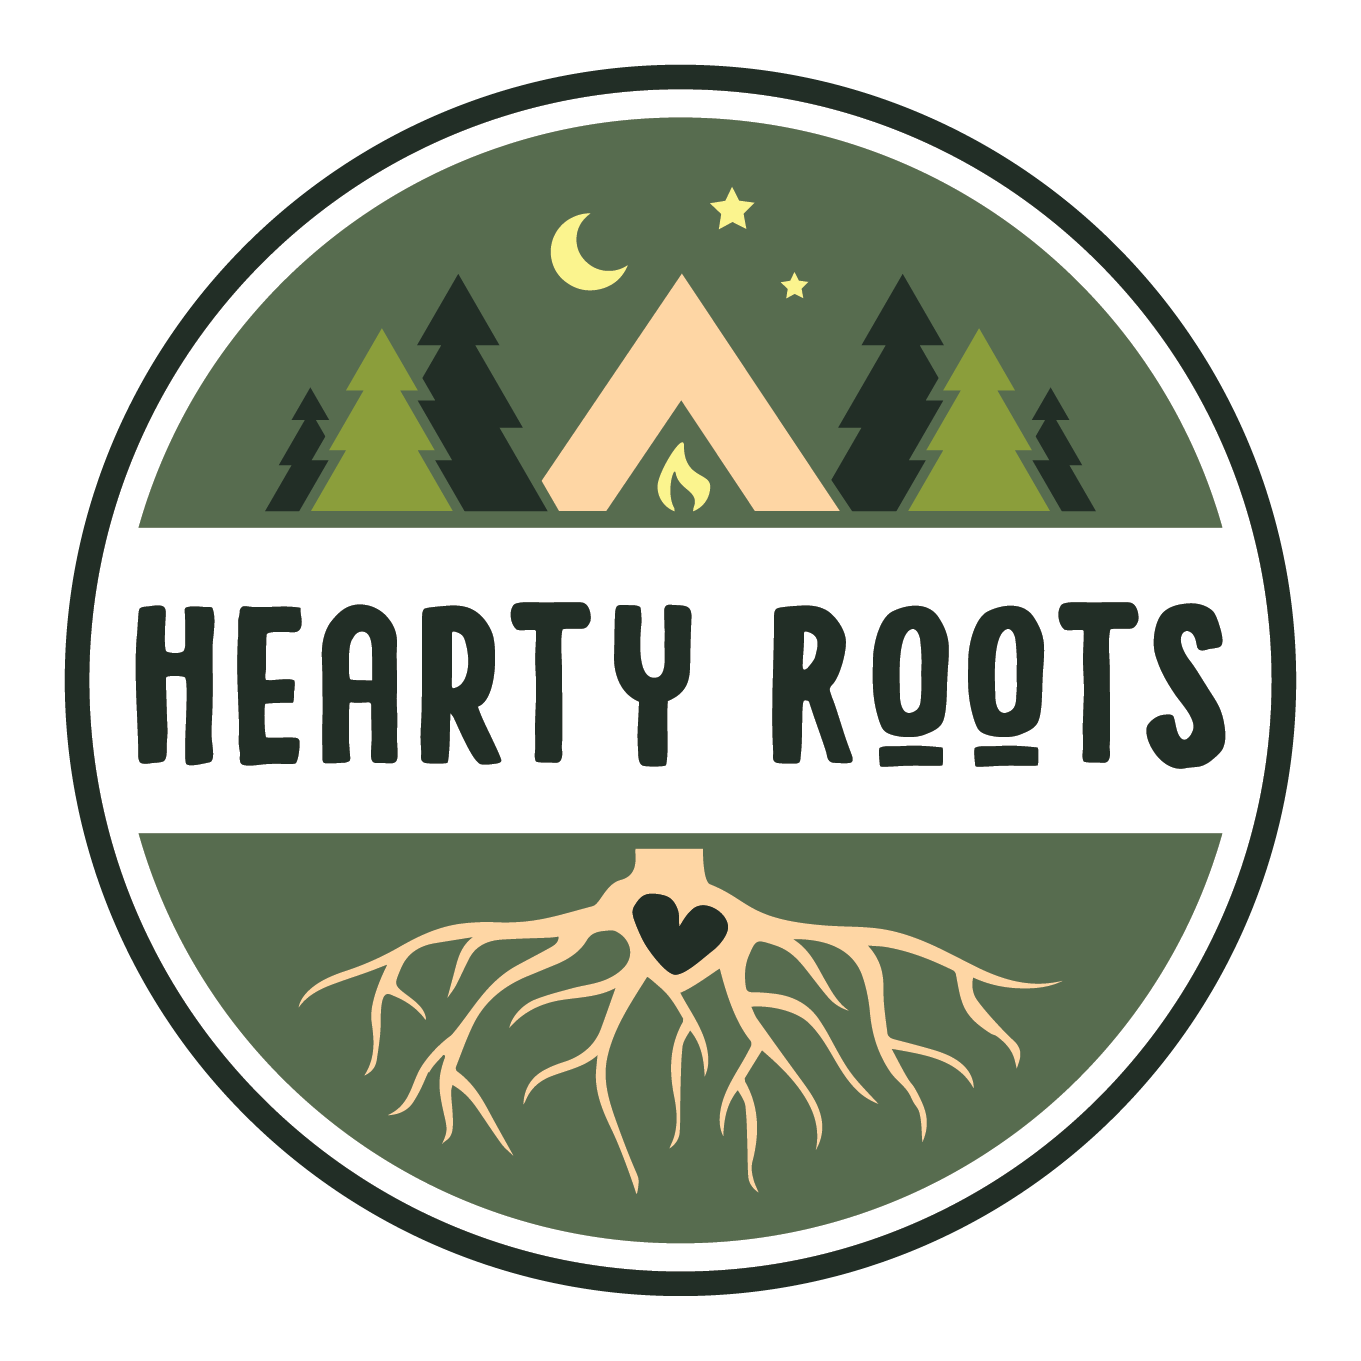 heartyroots_final-01.png